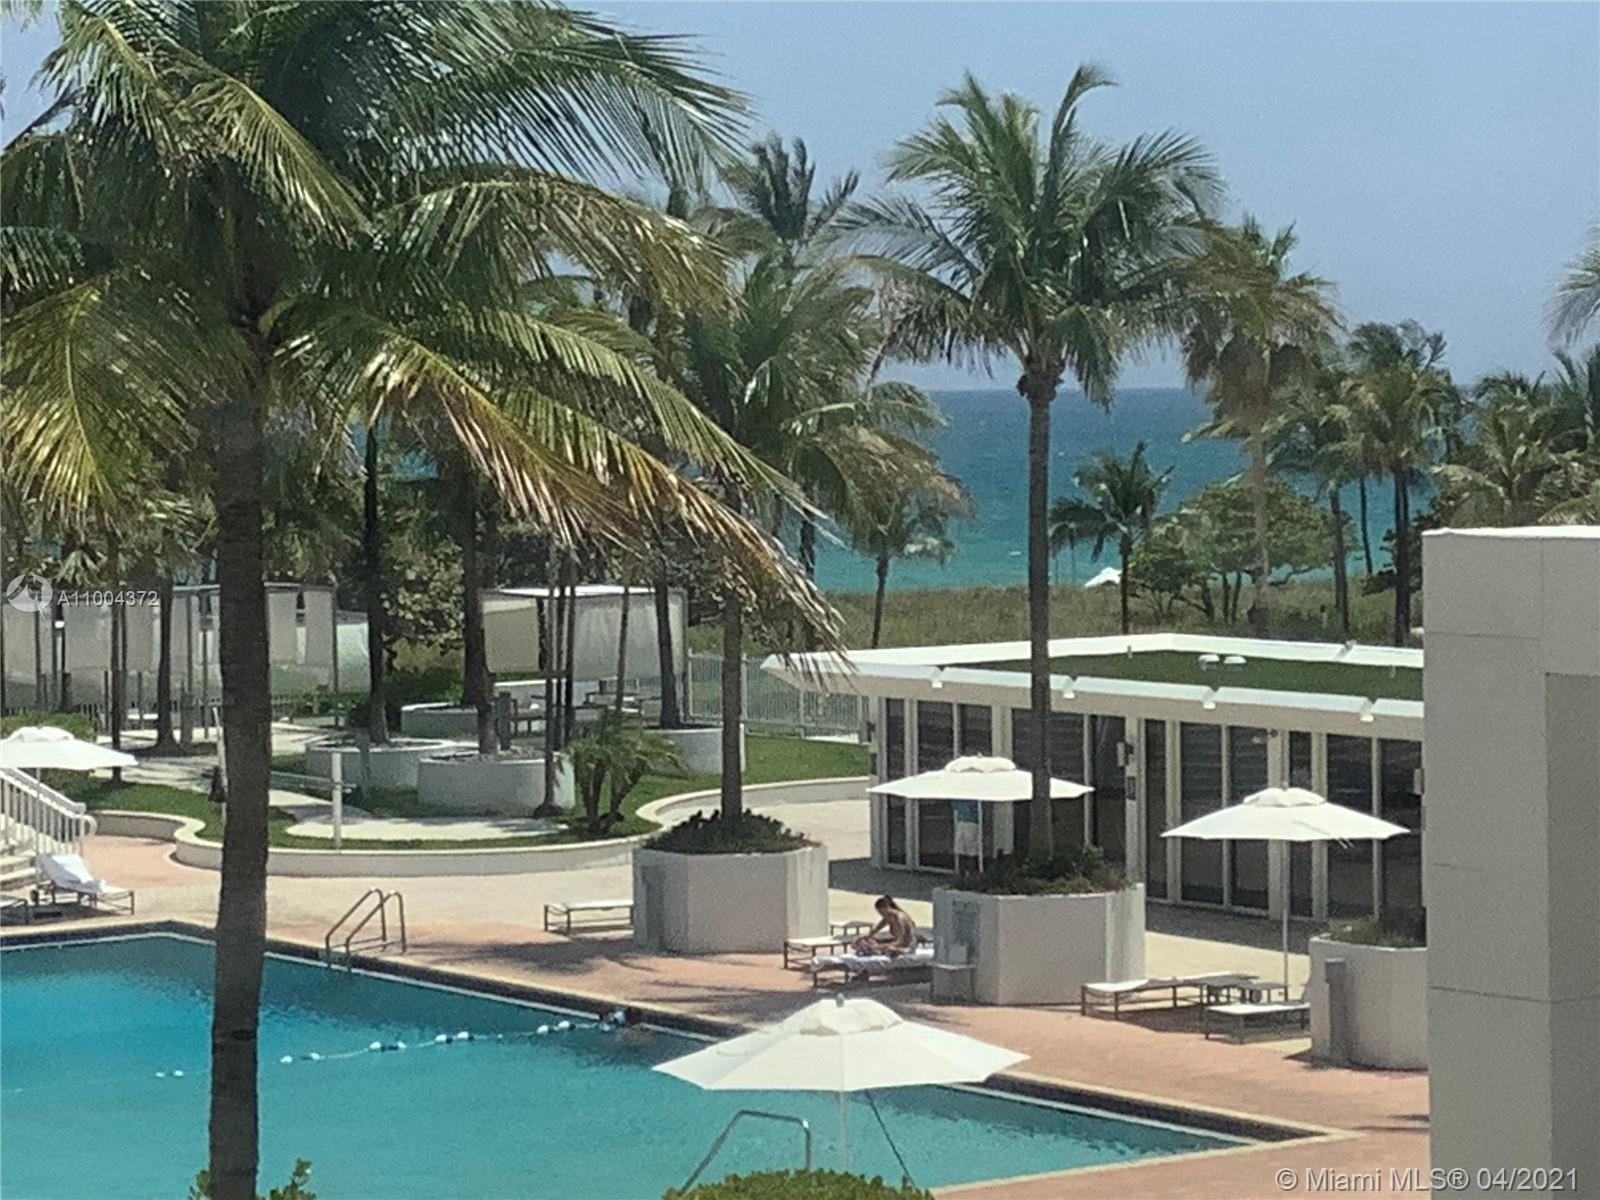 Spectacular direct ocean, beach, and pool view from this spacious 2 bedroom/2 bathroom apartment with oversized balcony(approximately double in size), located near famous Bal Harbour shops in one of the most desirable and prestigious beaches in South Florida. Relax in this renovated unit with 40X40 ceramic tiles, a modern kitchen with quatrz countertops, stainless steel appliances, and top of line washer and dryer.  Enjoy 5-star resort living with 24-hour security, valet, pool + jacuzzi, beach services, coffee shop, convenience store, movie theater, social room with pool tables and wet bar, gym, his & her spa, sauna, steam room, oceanfront walking-jogging path, bike path to South Beach and fishing pier. Bonus!